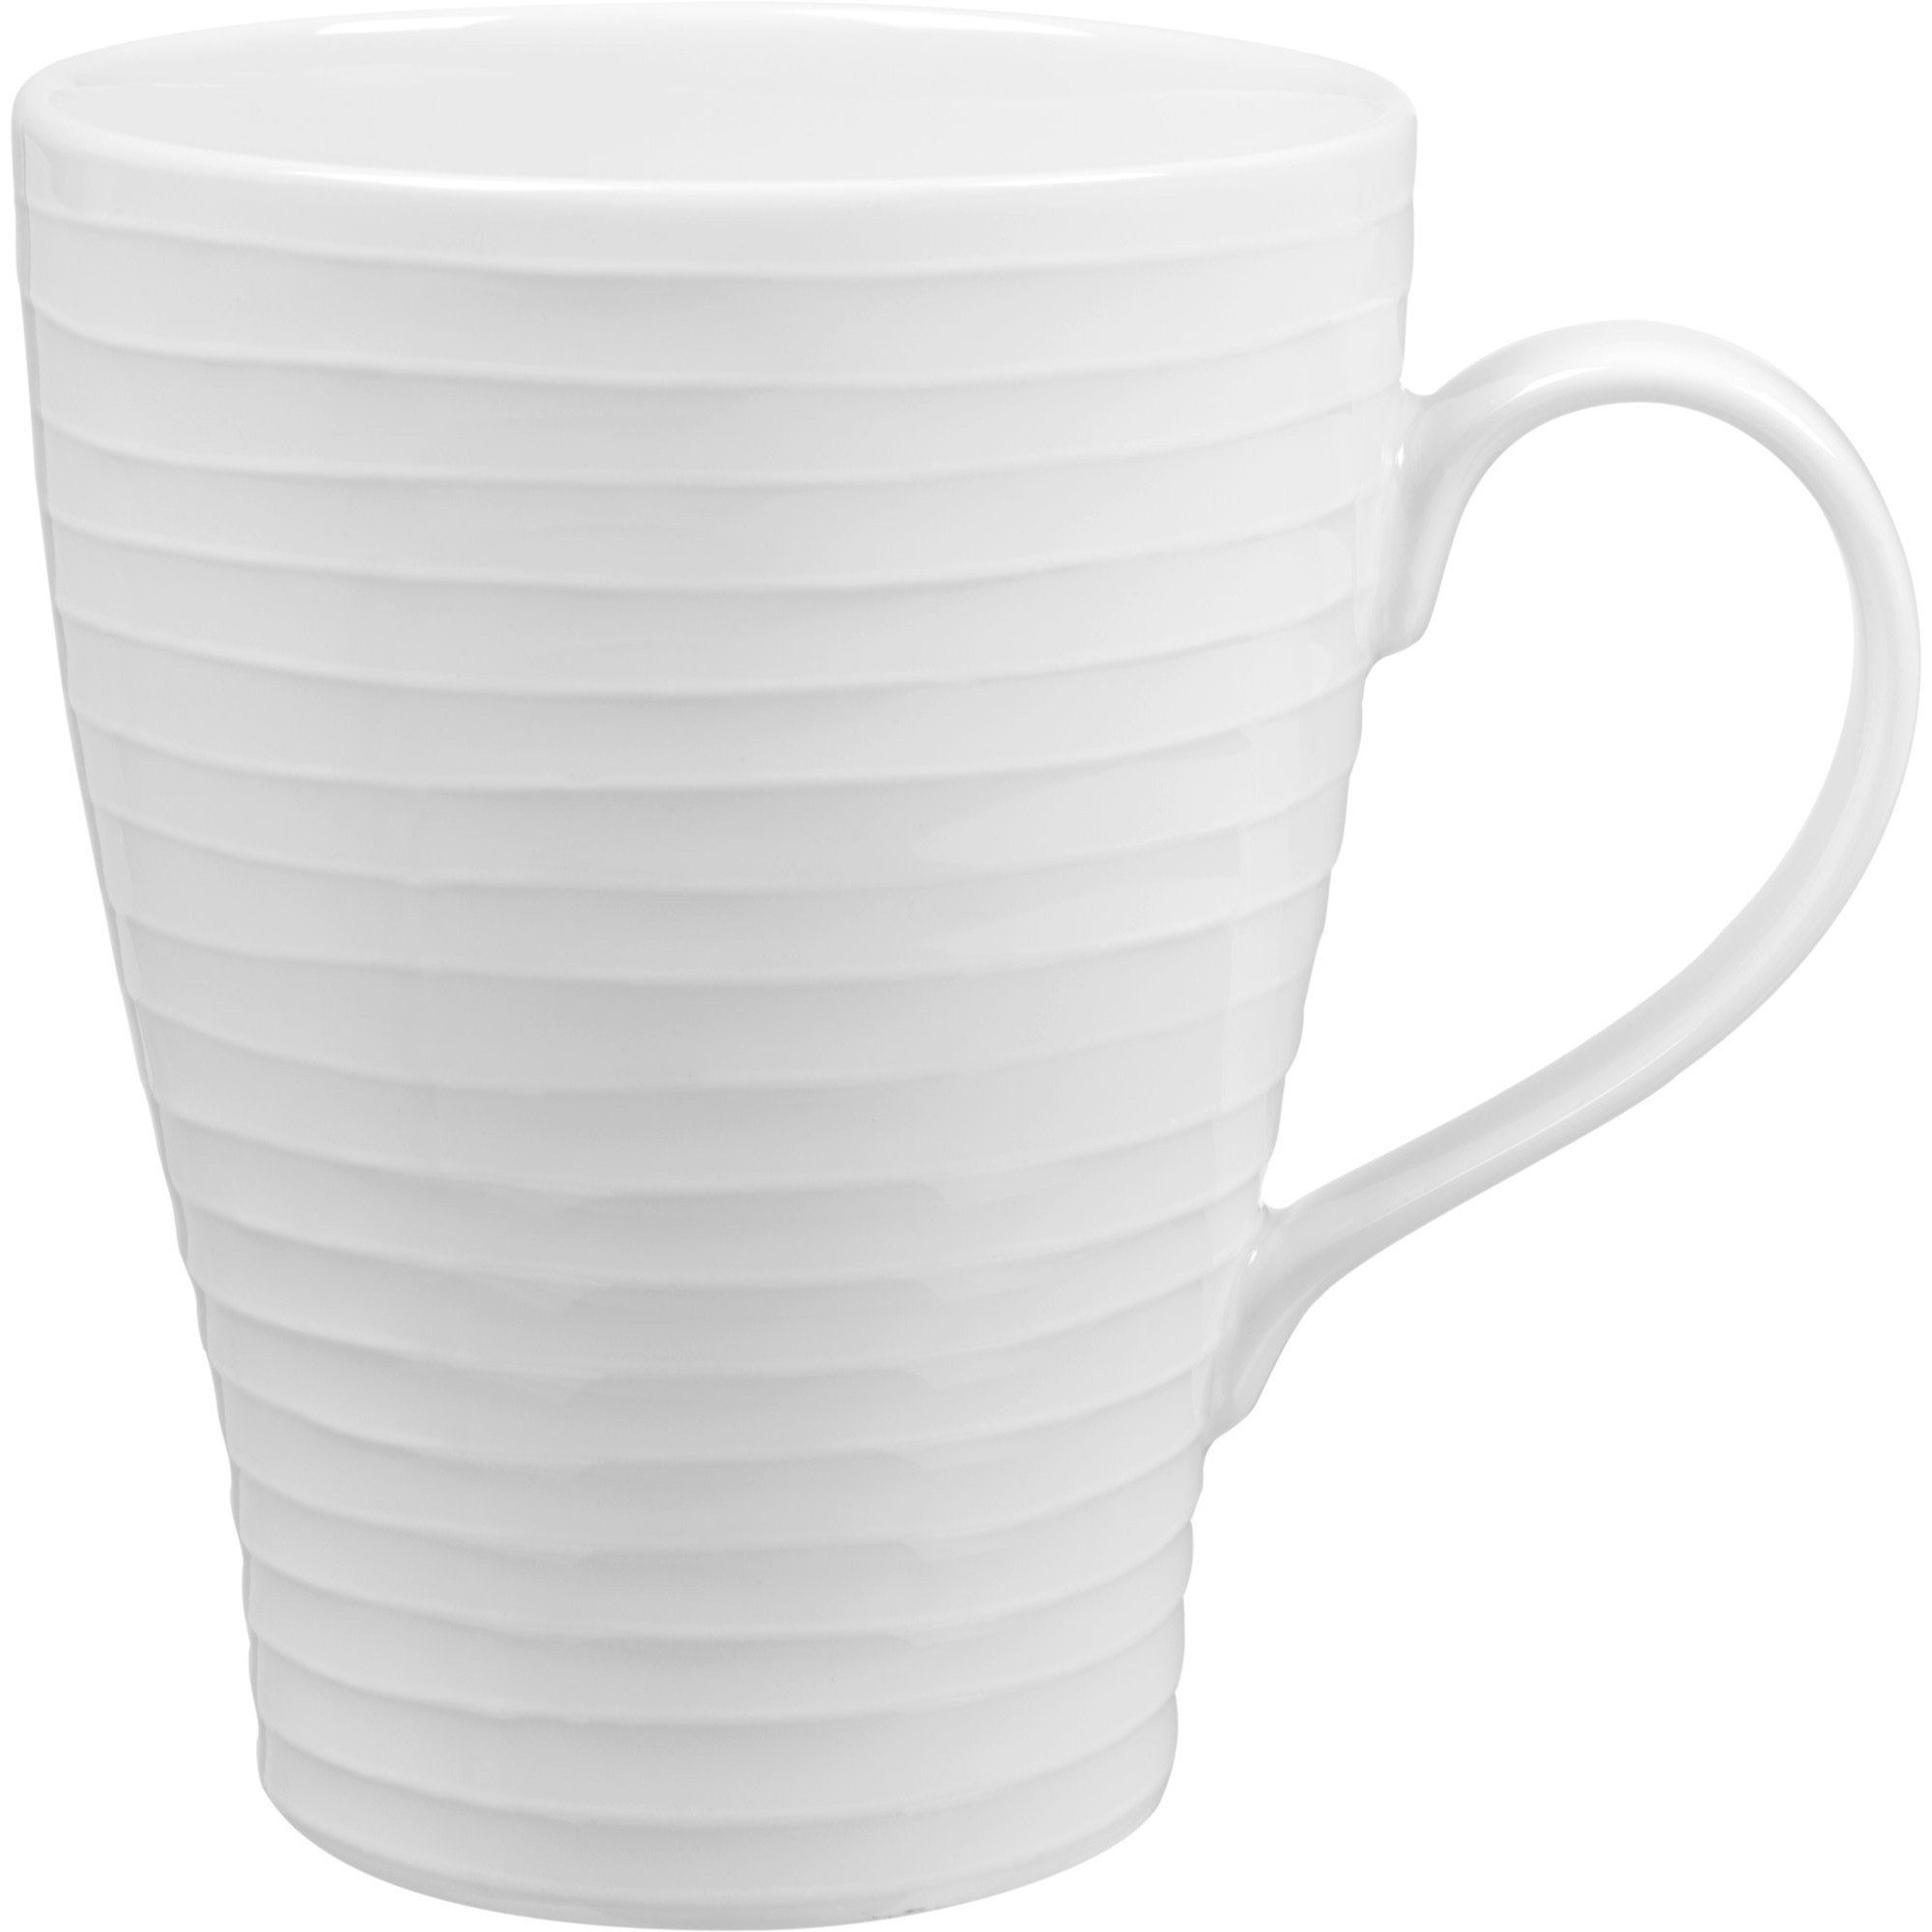 Design House Stockholm Blond Mugg Vit/Randig 30cl